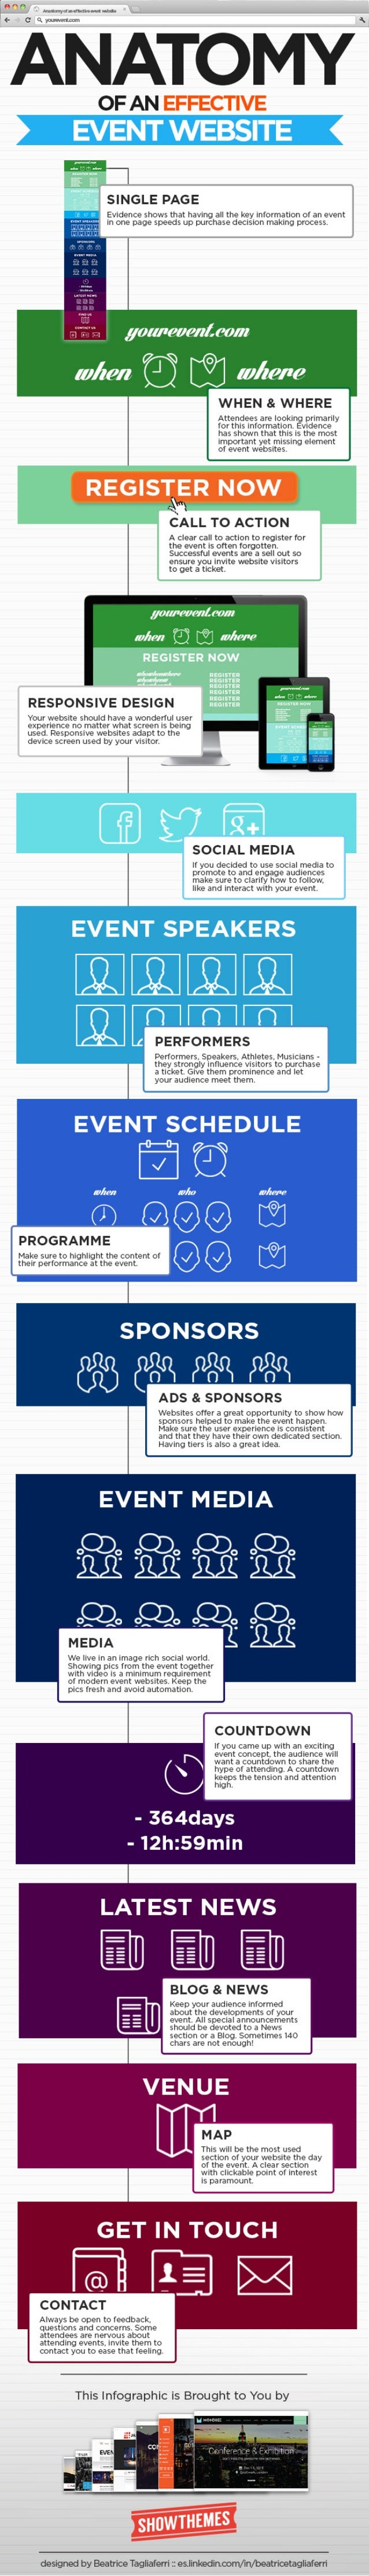 Anatomy of an Effective Event Webiste